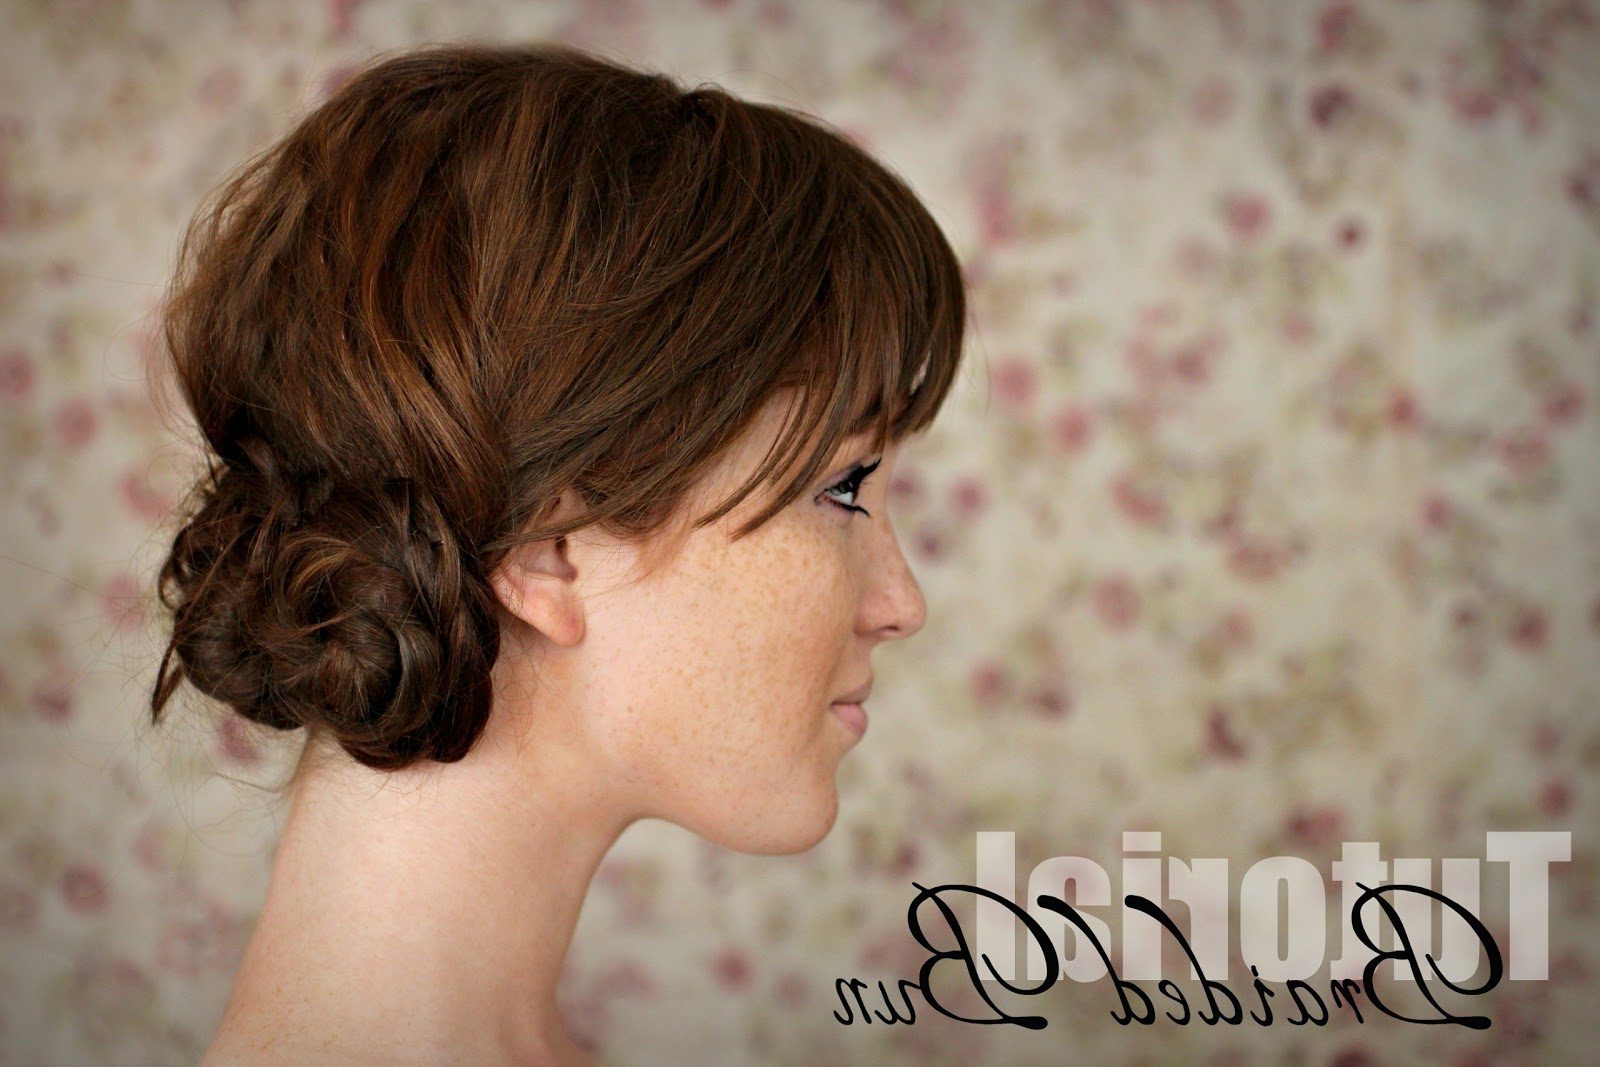 Current Cinnamon Bun Braided Hairstyles Pertaining To The Freckled Fox: Hair Tutorial // Braided Bun (View 11 of 20)